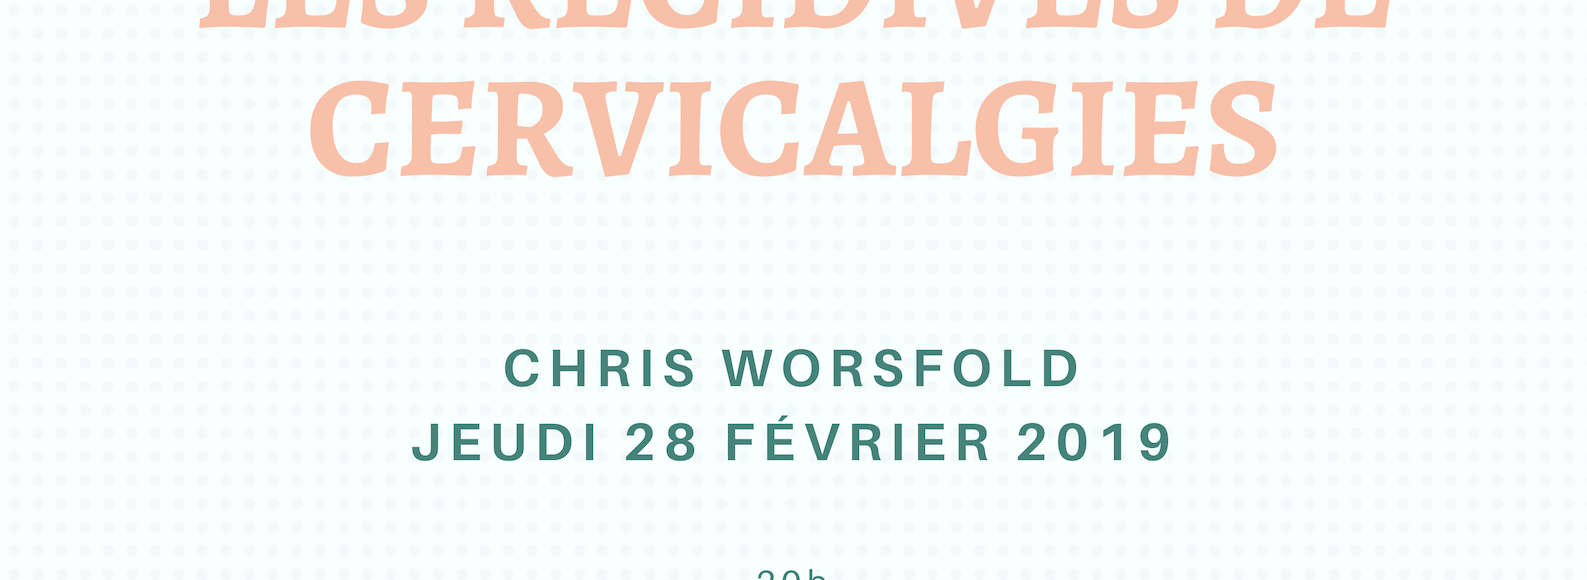 Chris Worsfold : Cervicalgies